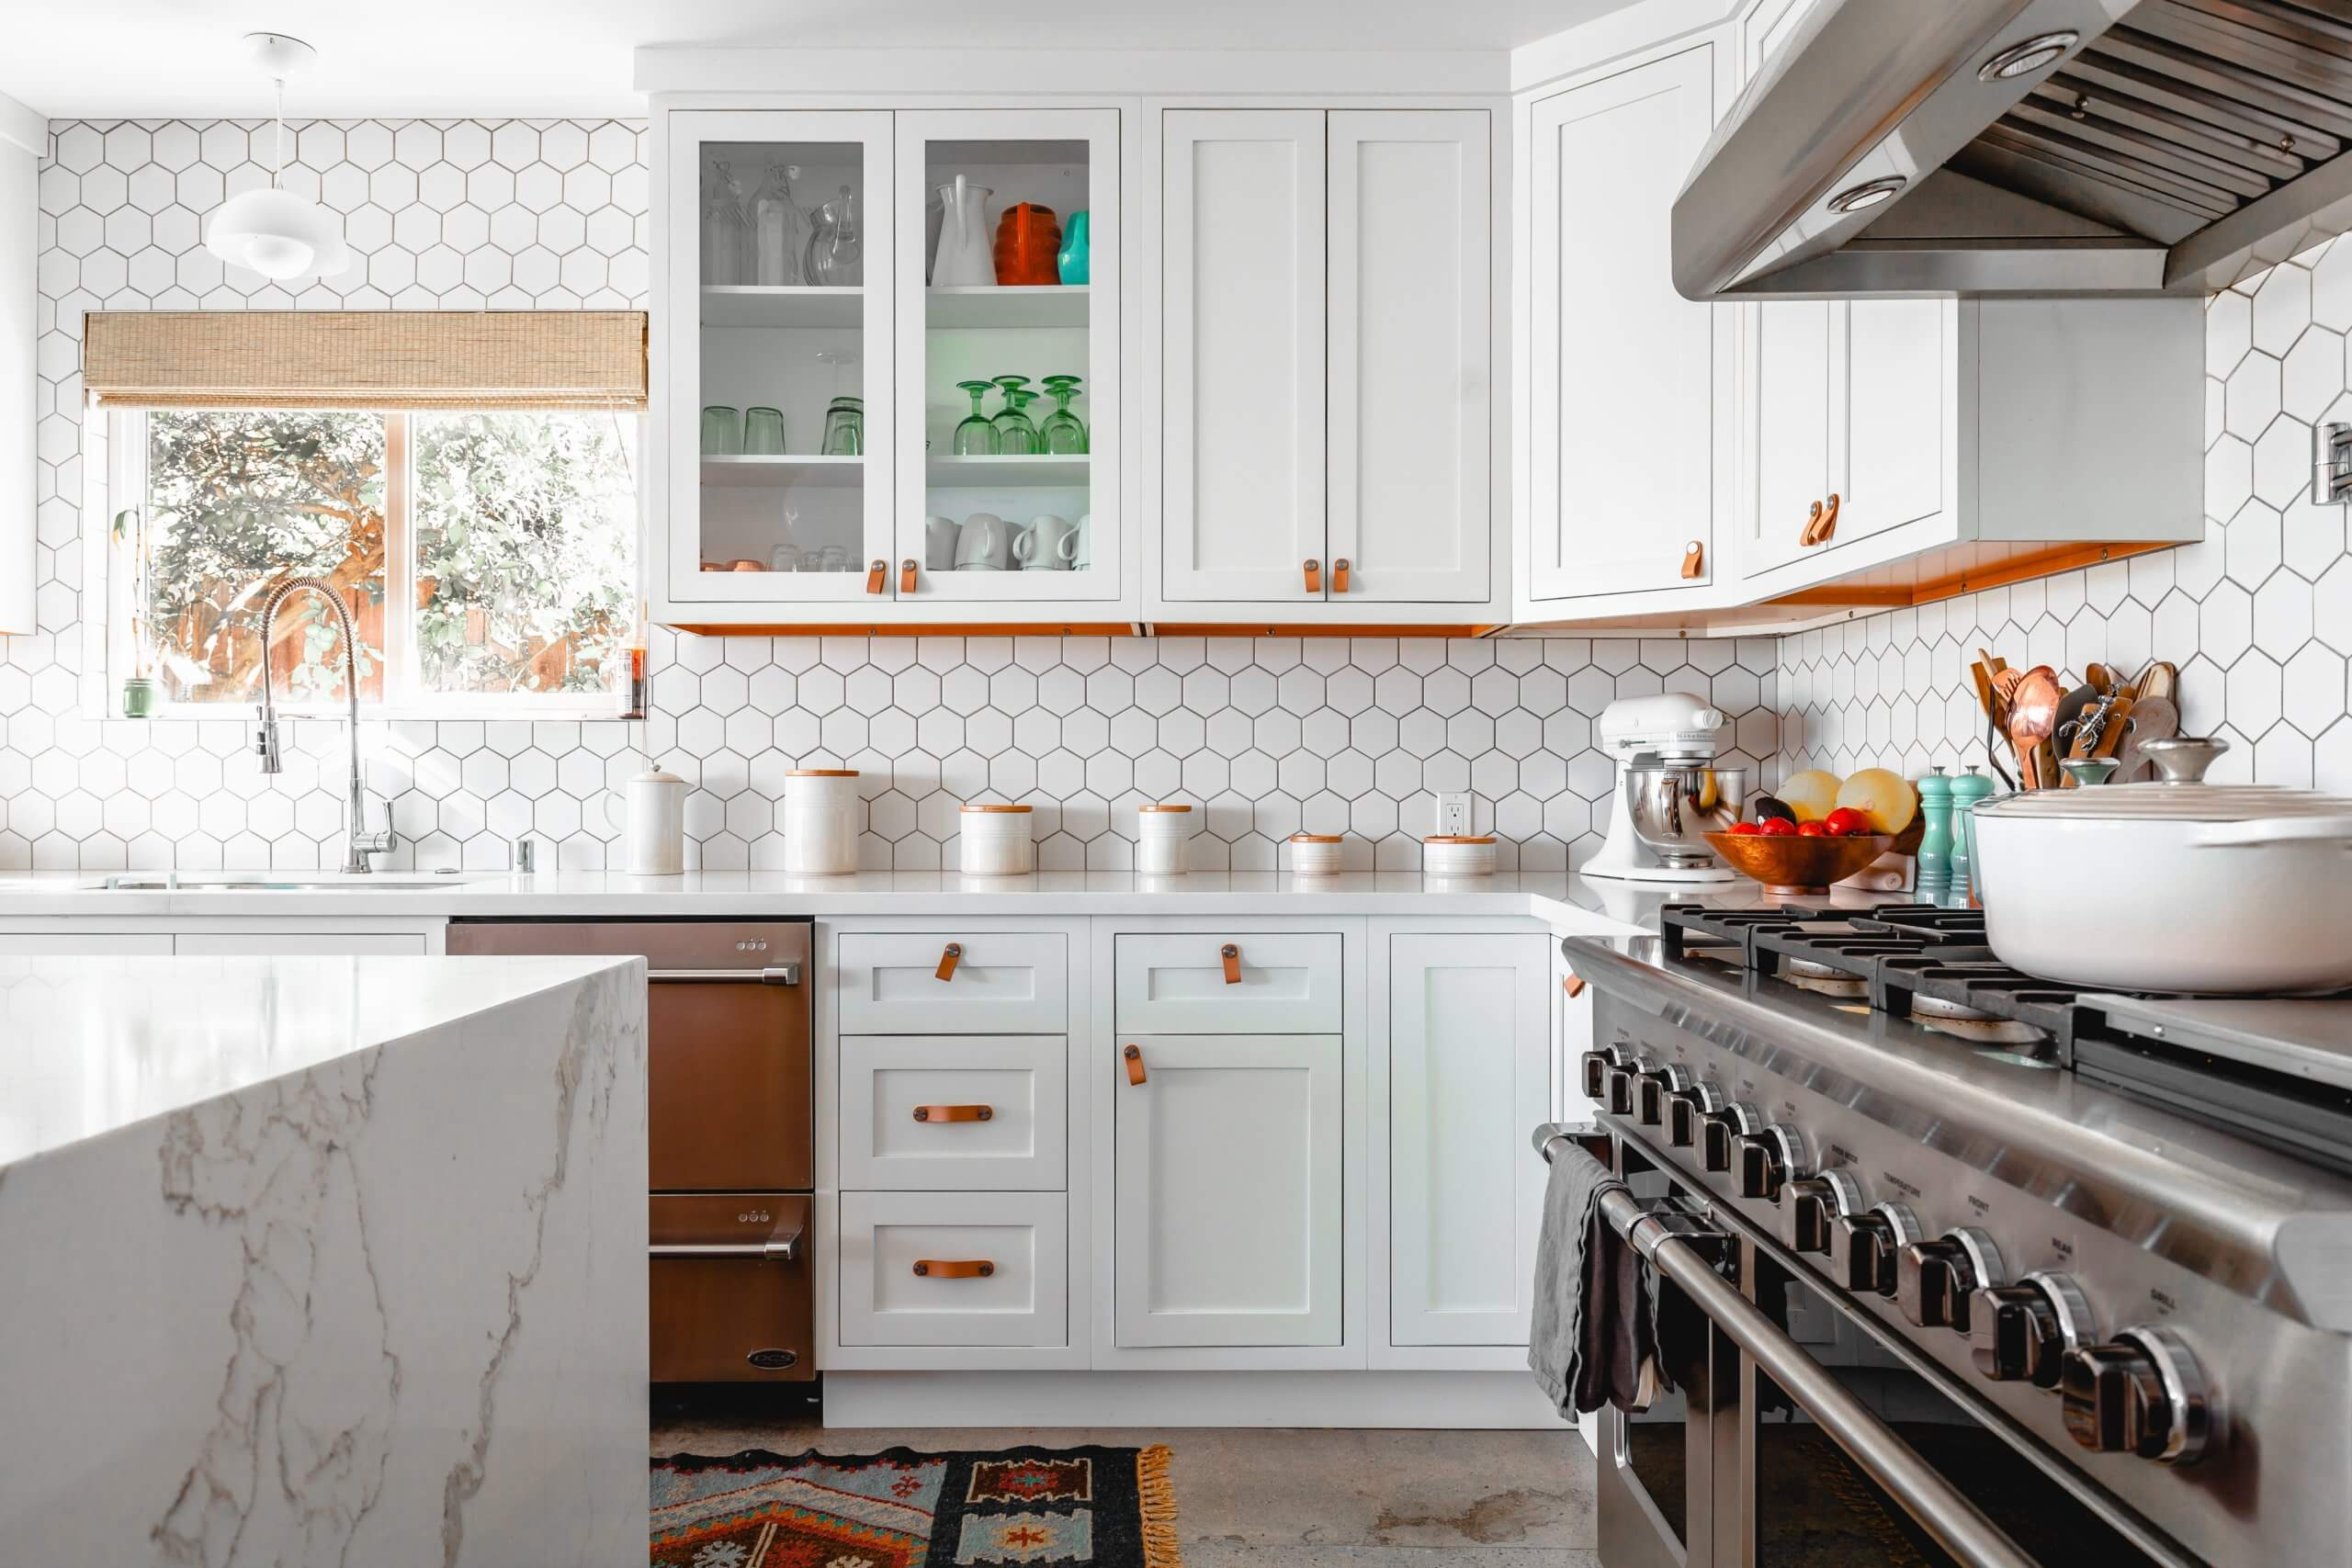 Kitchen Remodeling Project: Countertops